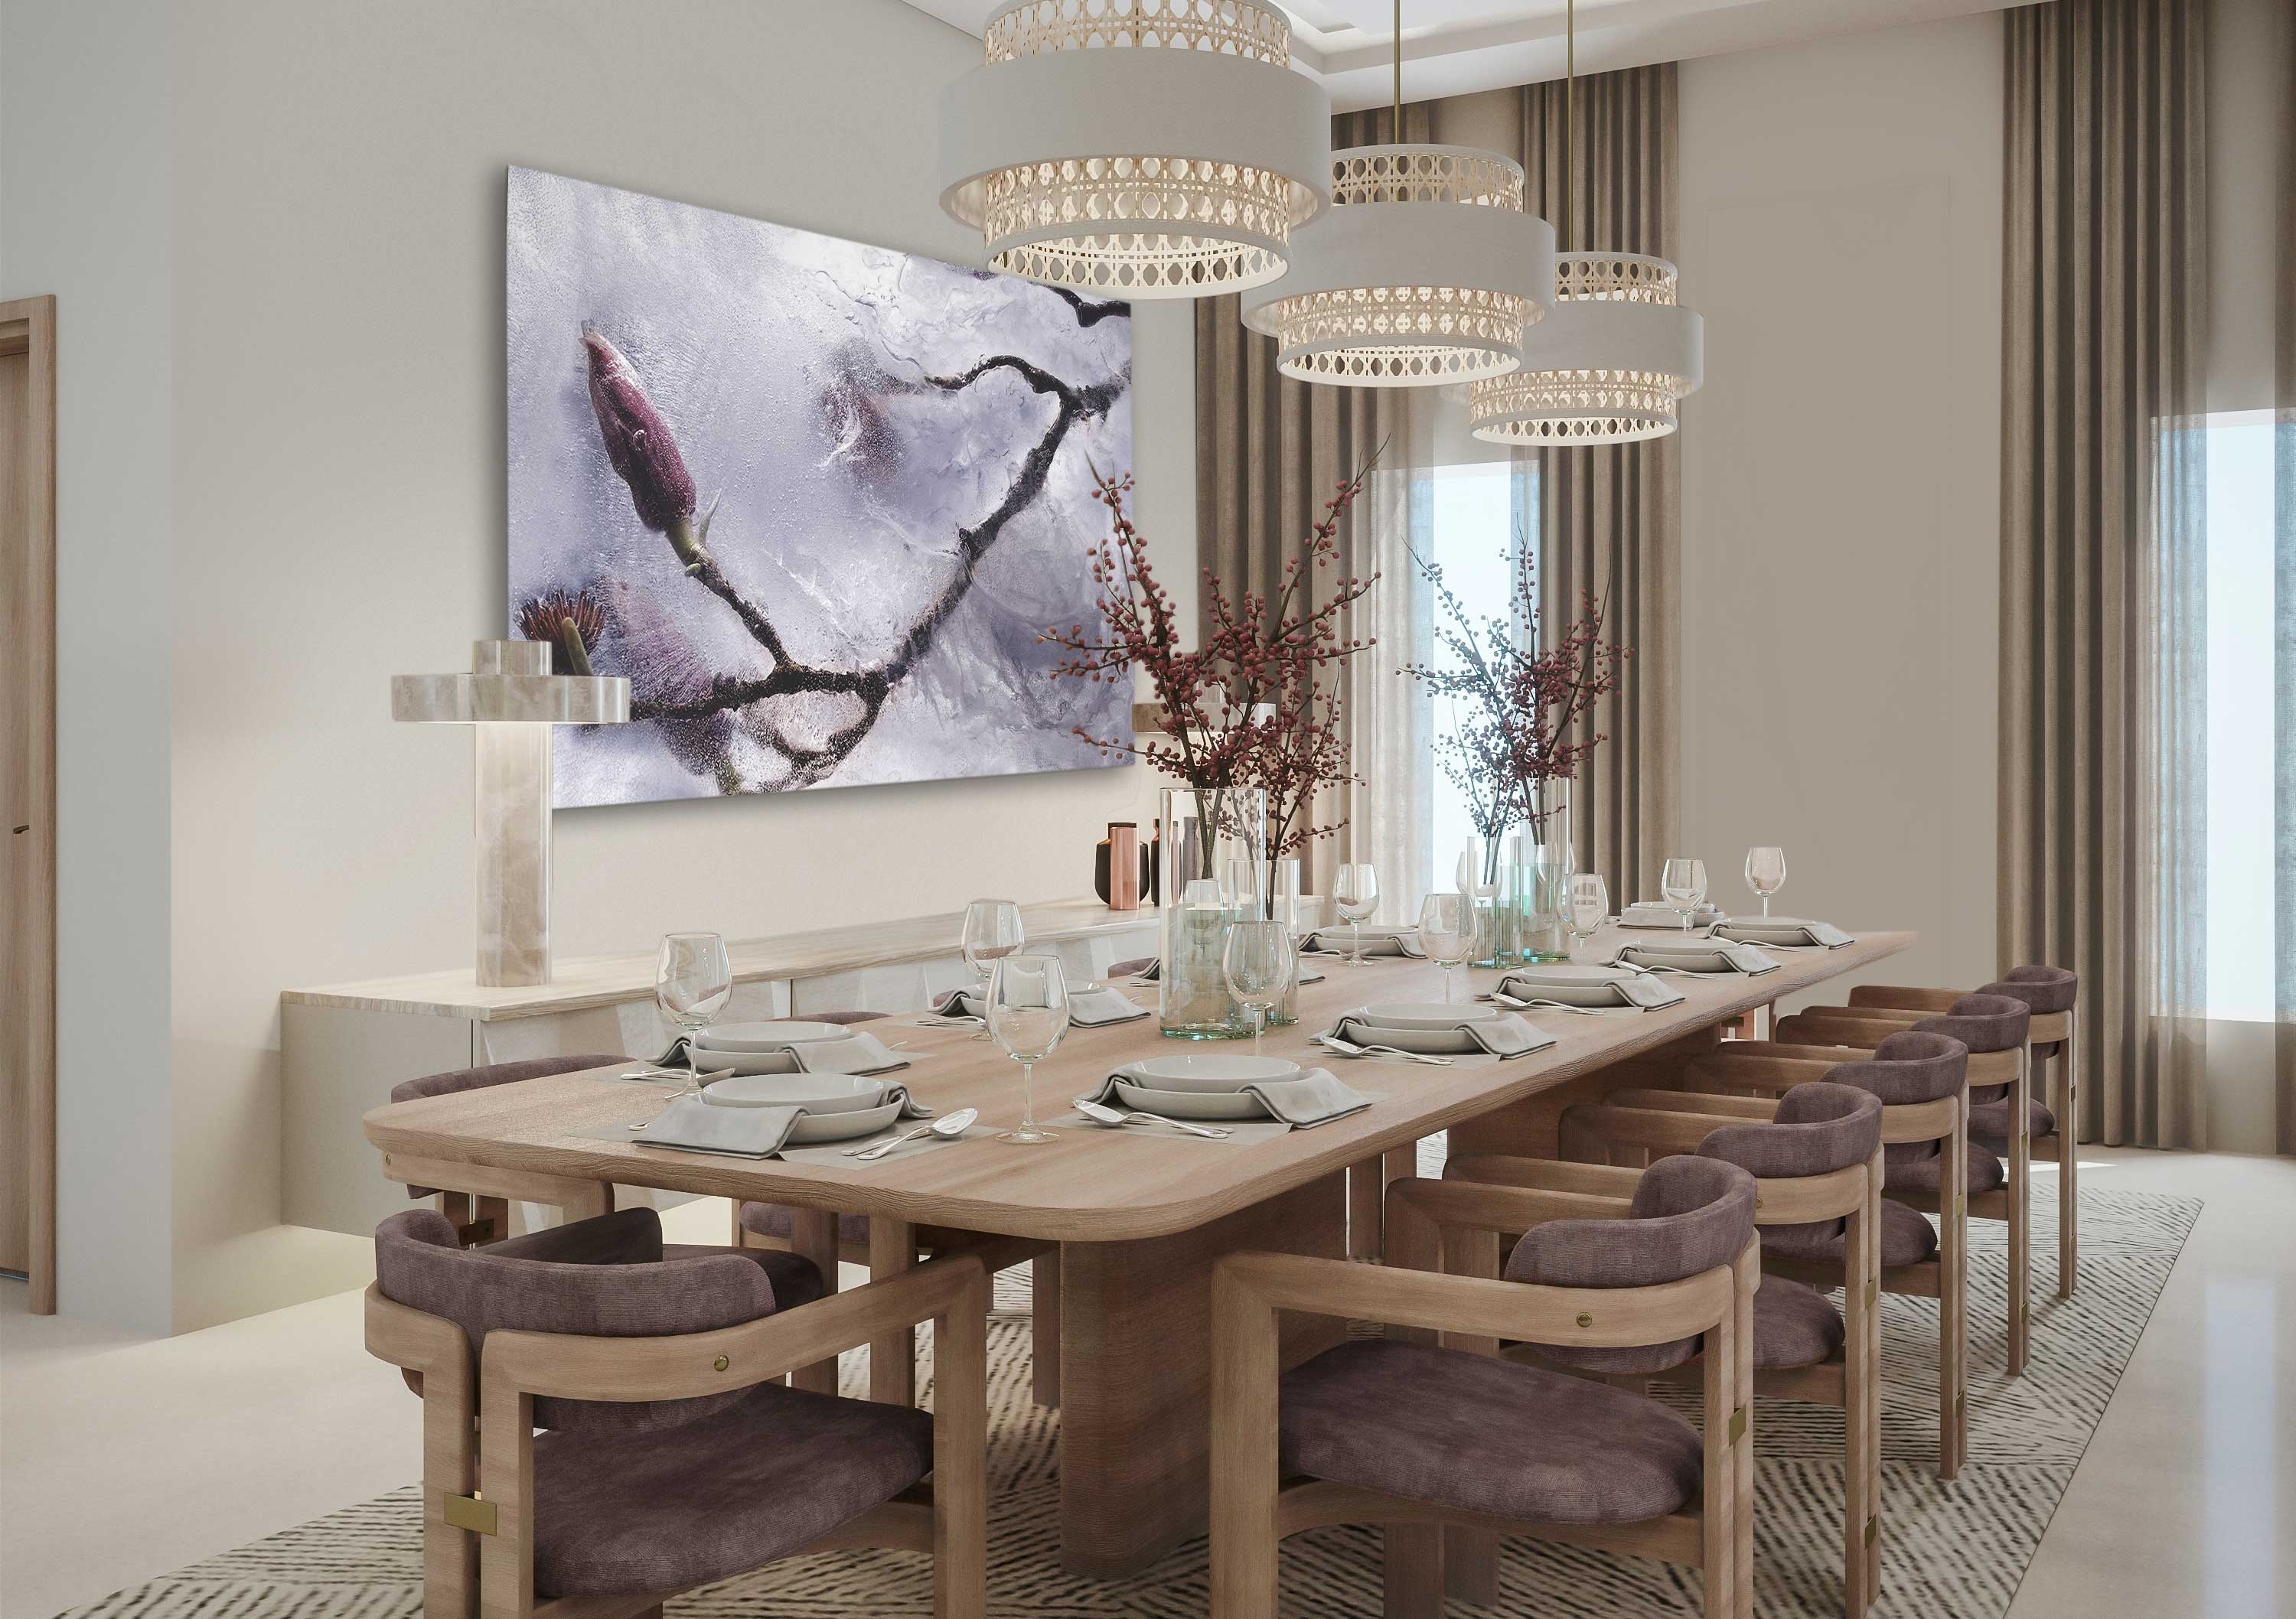 Elegant dining room with floral wall art from the Still collection.